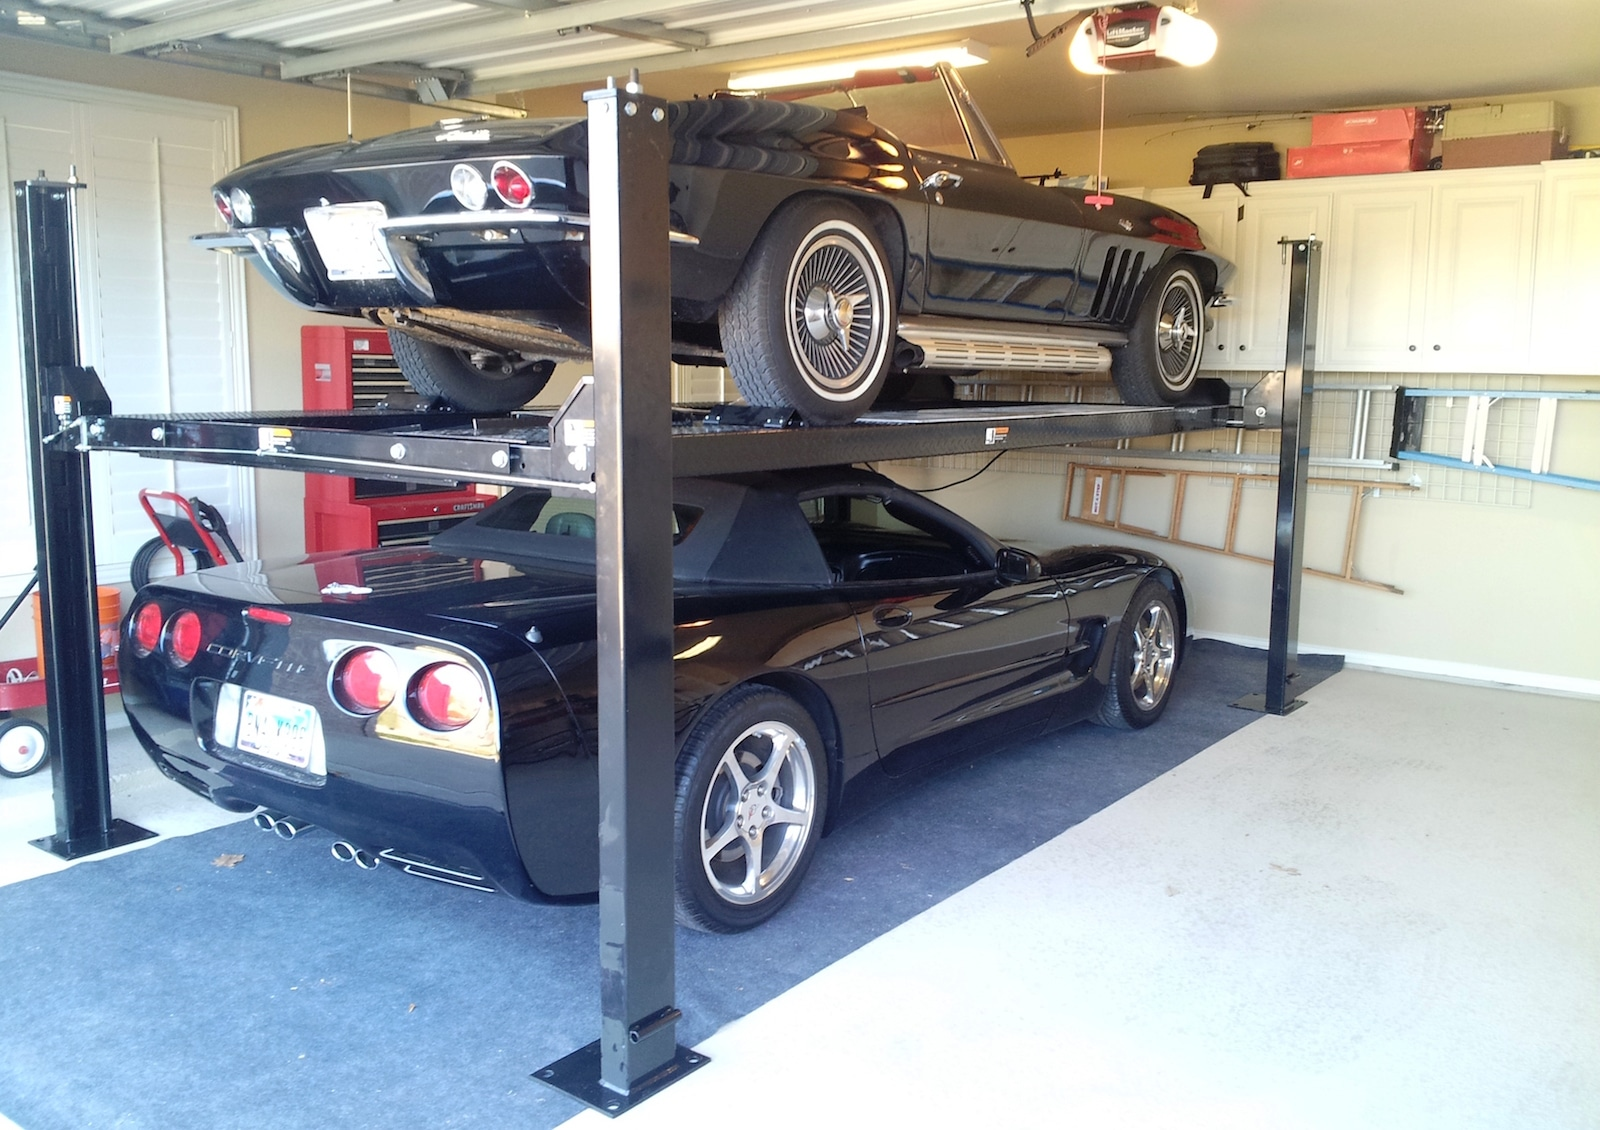 The Best Car Lift For Your Home Garage 2 Amp 4 Post Lifts